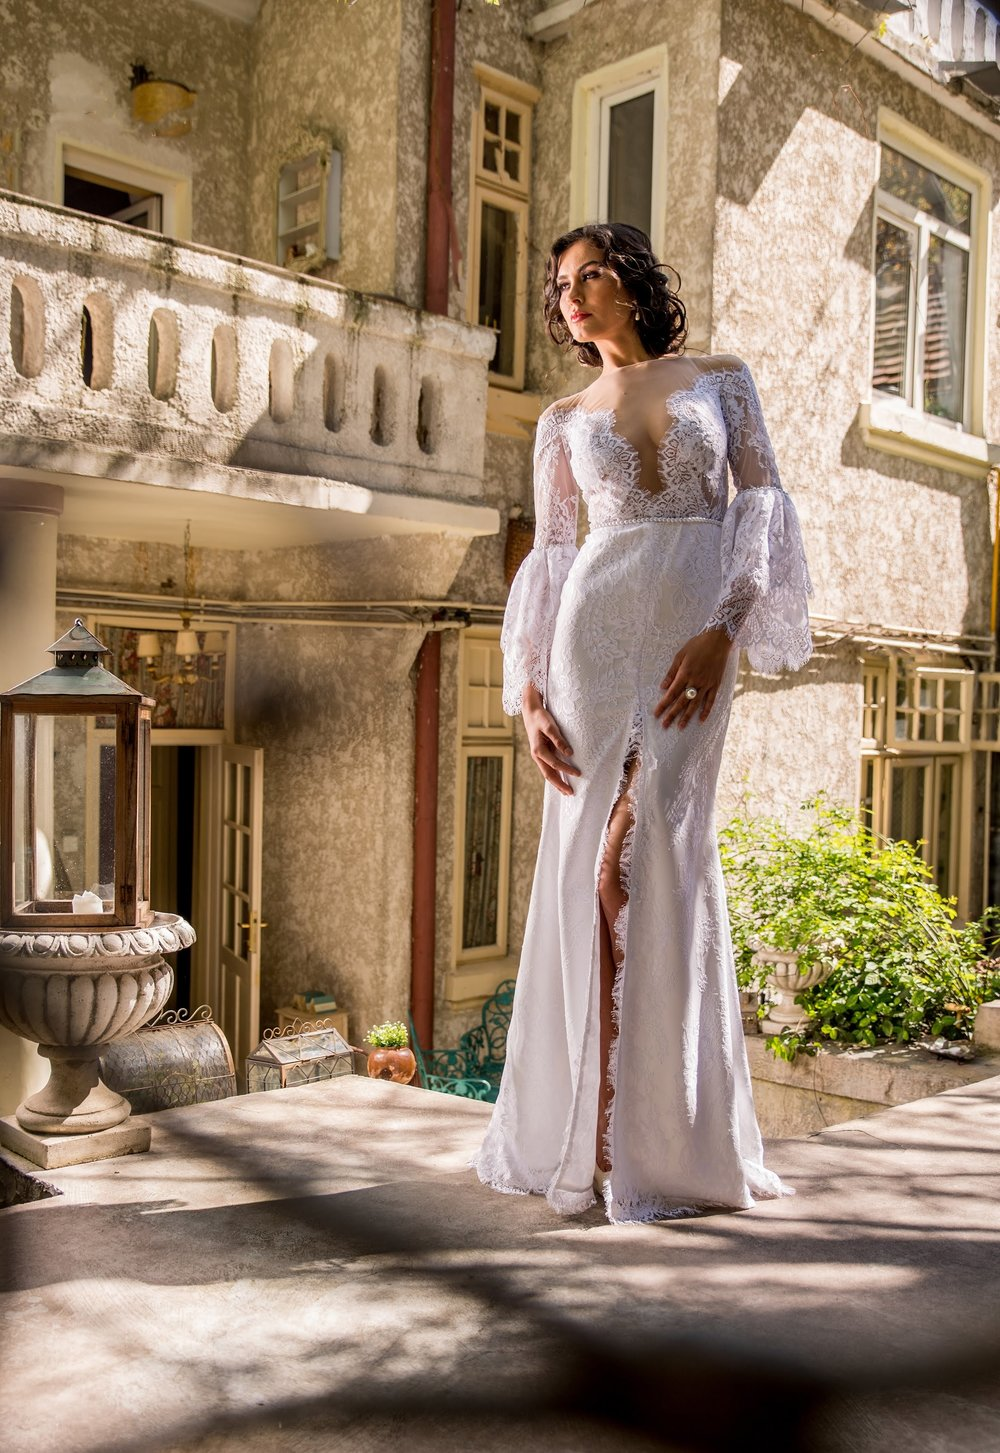 Wear our lace wedding dress Muguet for an ultra romantic look on your big day